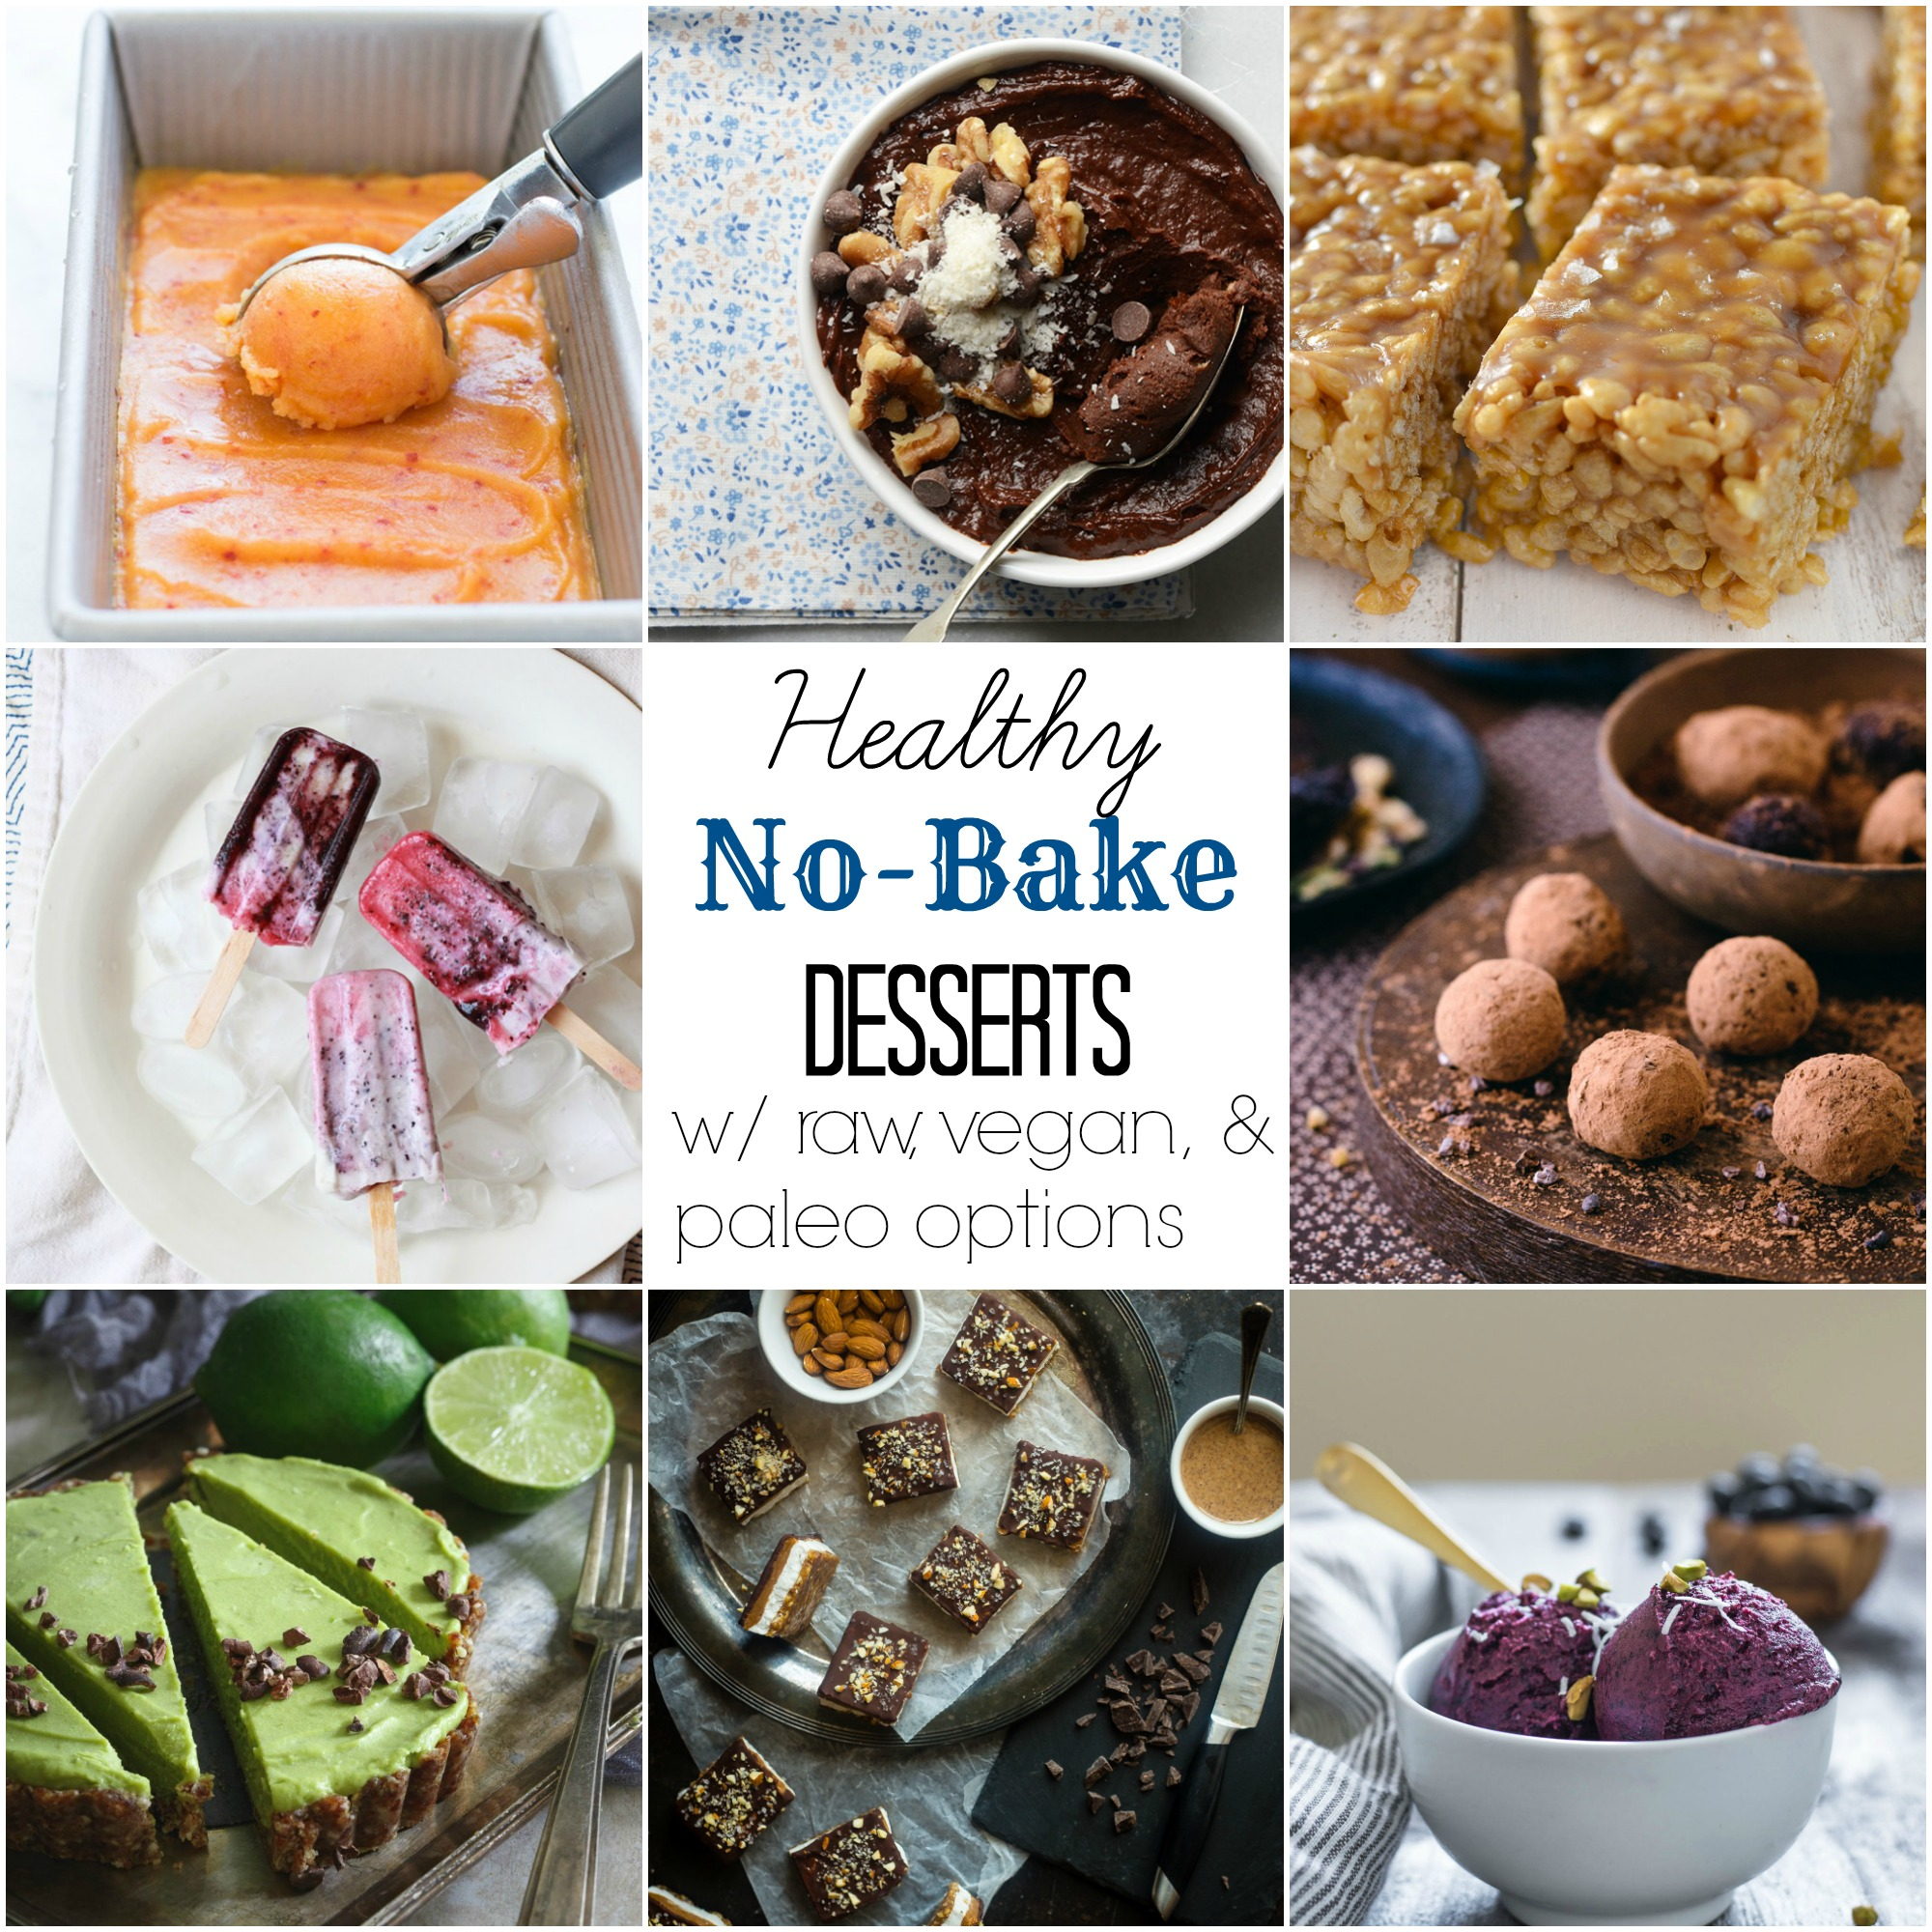 Healthy No-Bake Dessert Recipes with paleo, raw, and vegan options #glutenfree